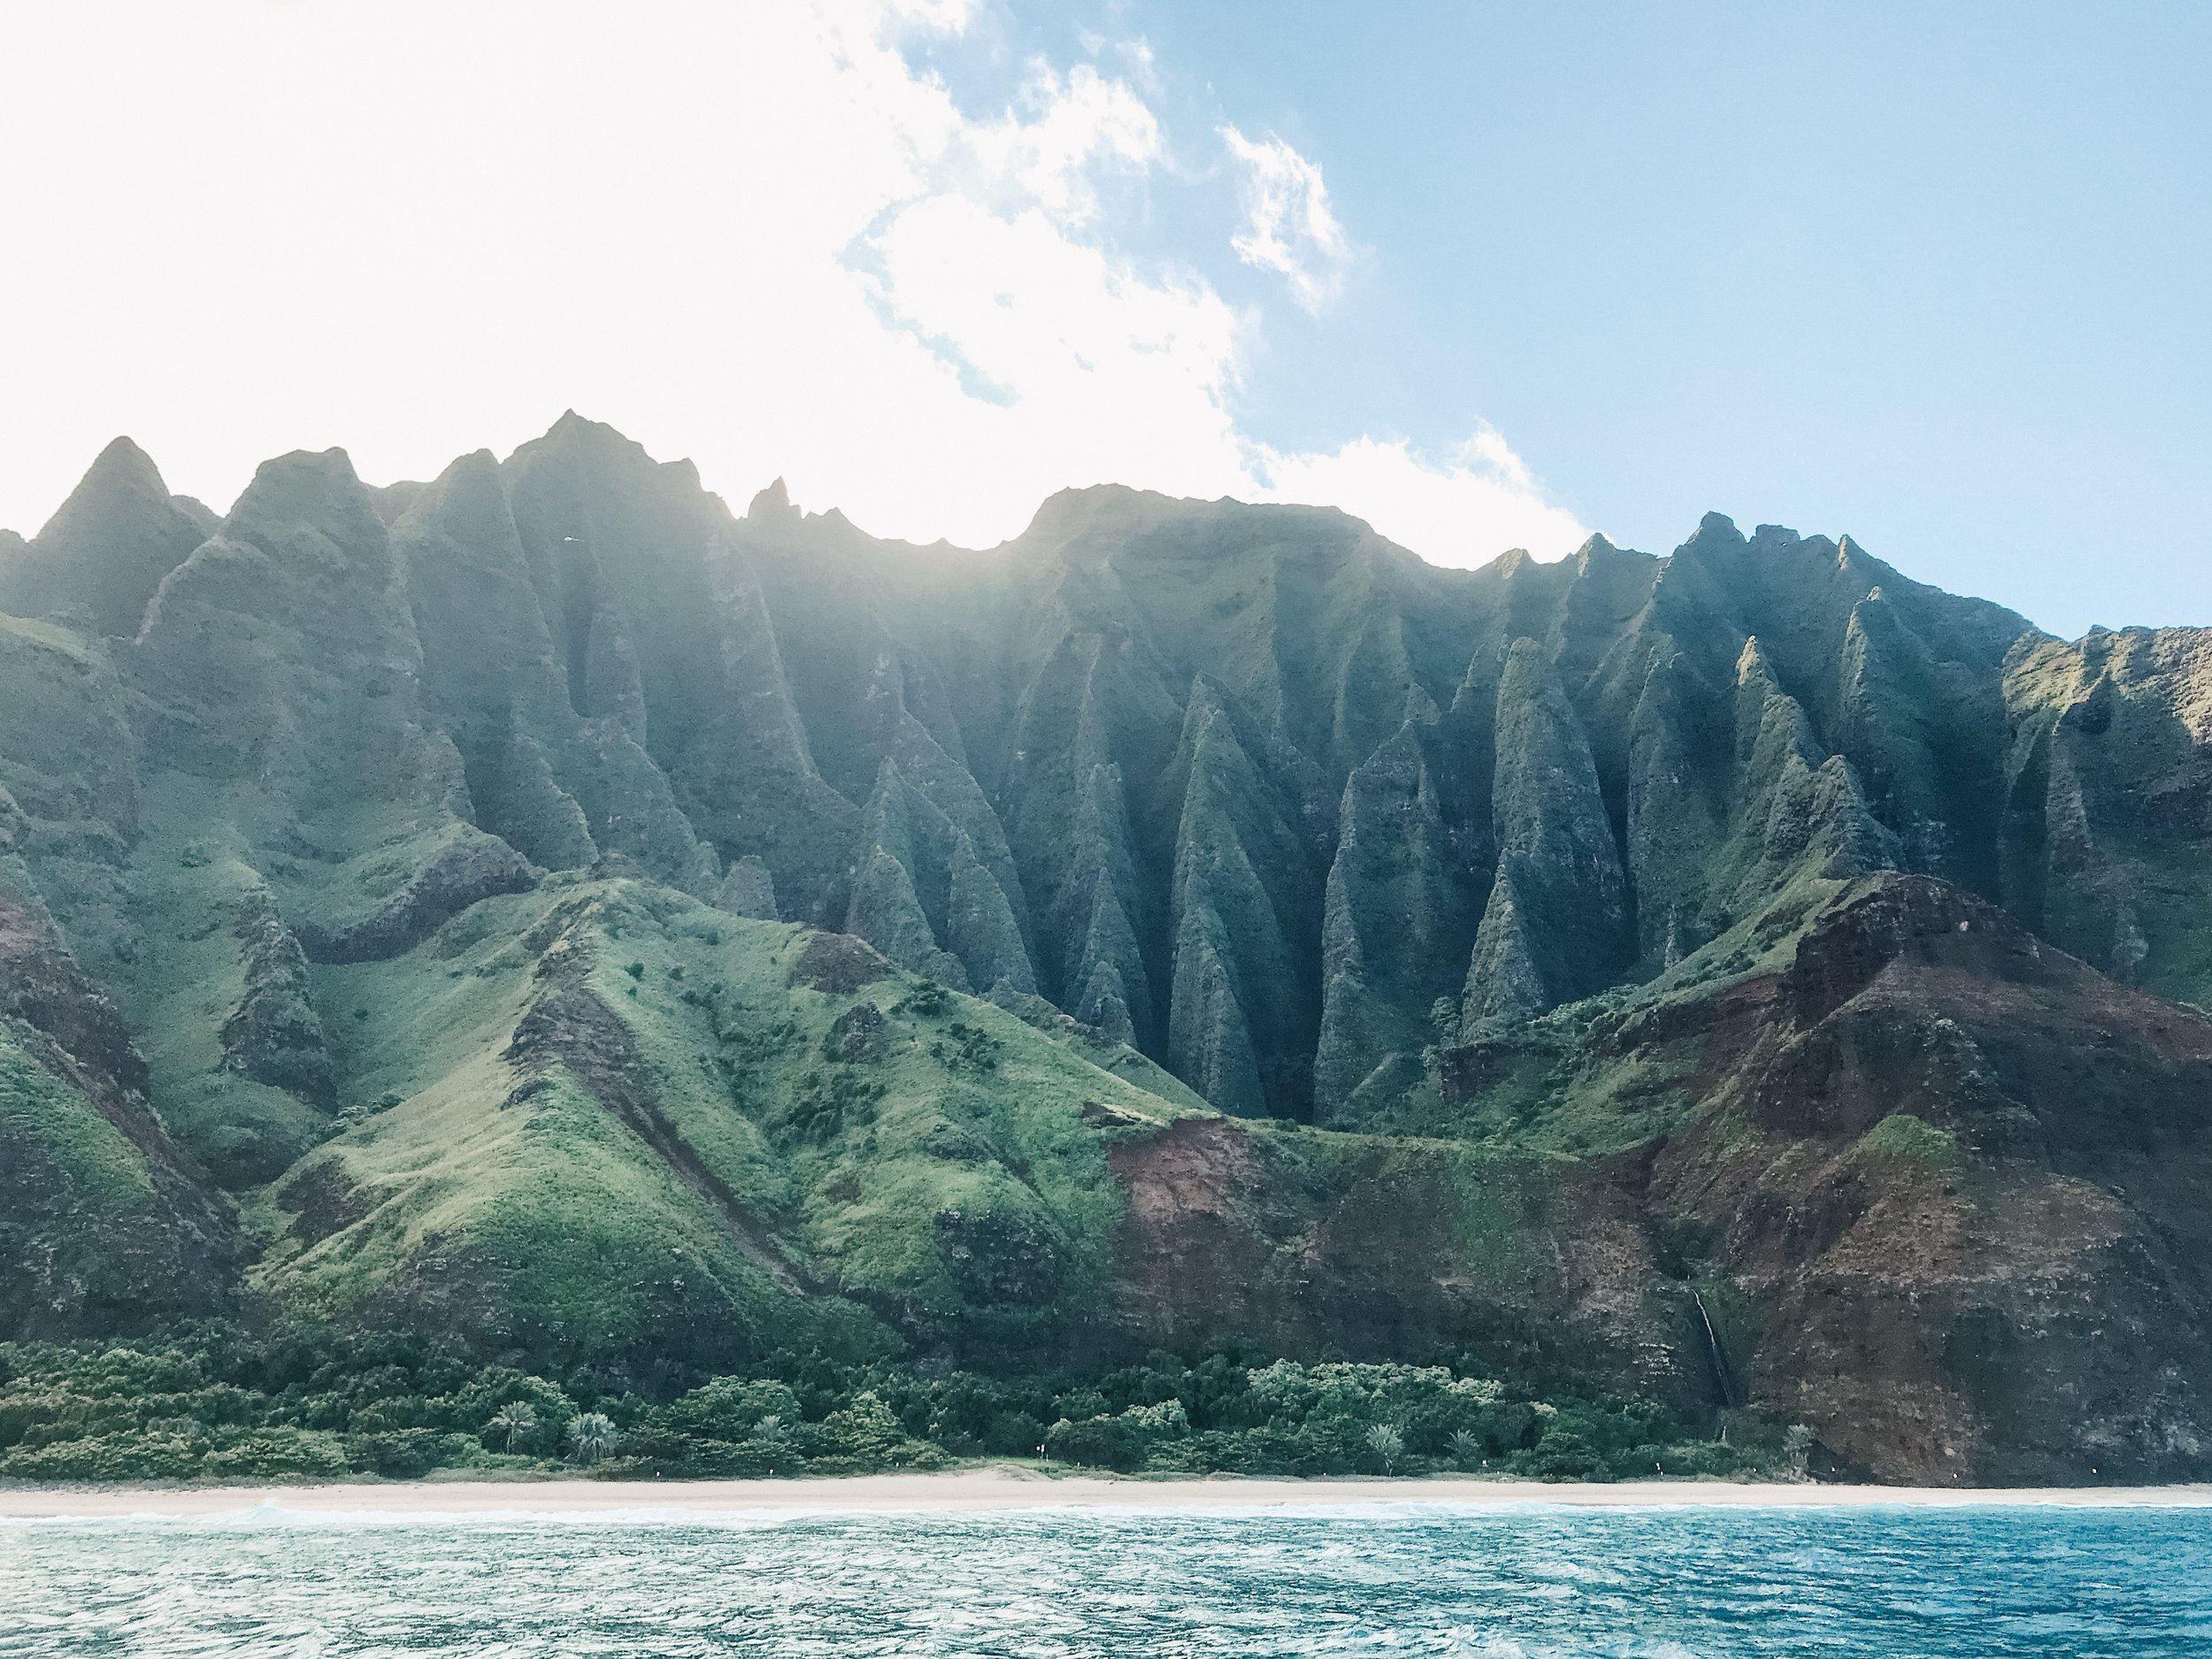 """Truly one of the most stunning landscapes in Hawaii. This section of the coast is known as the """"Cathedrals."""""""